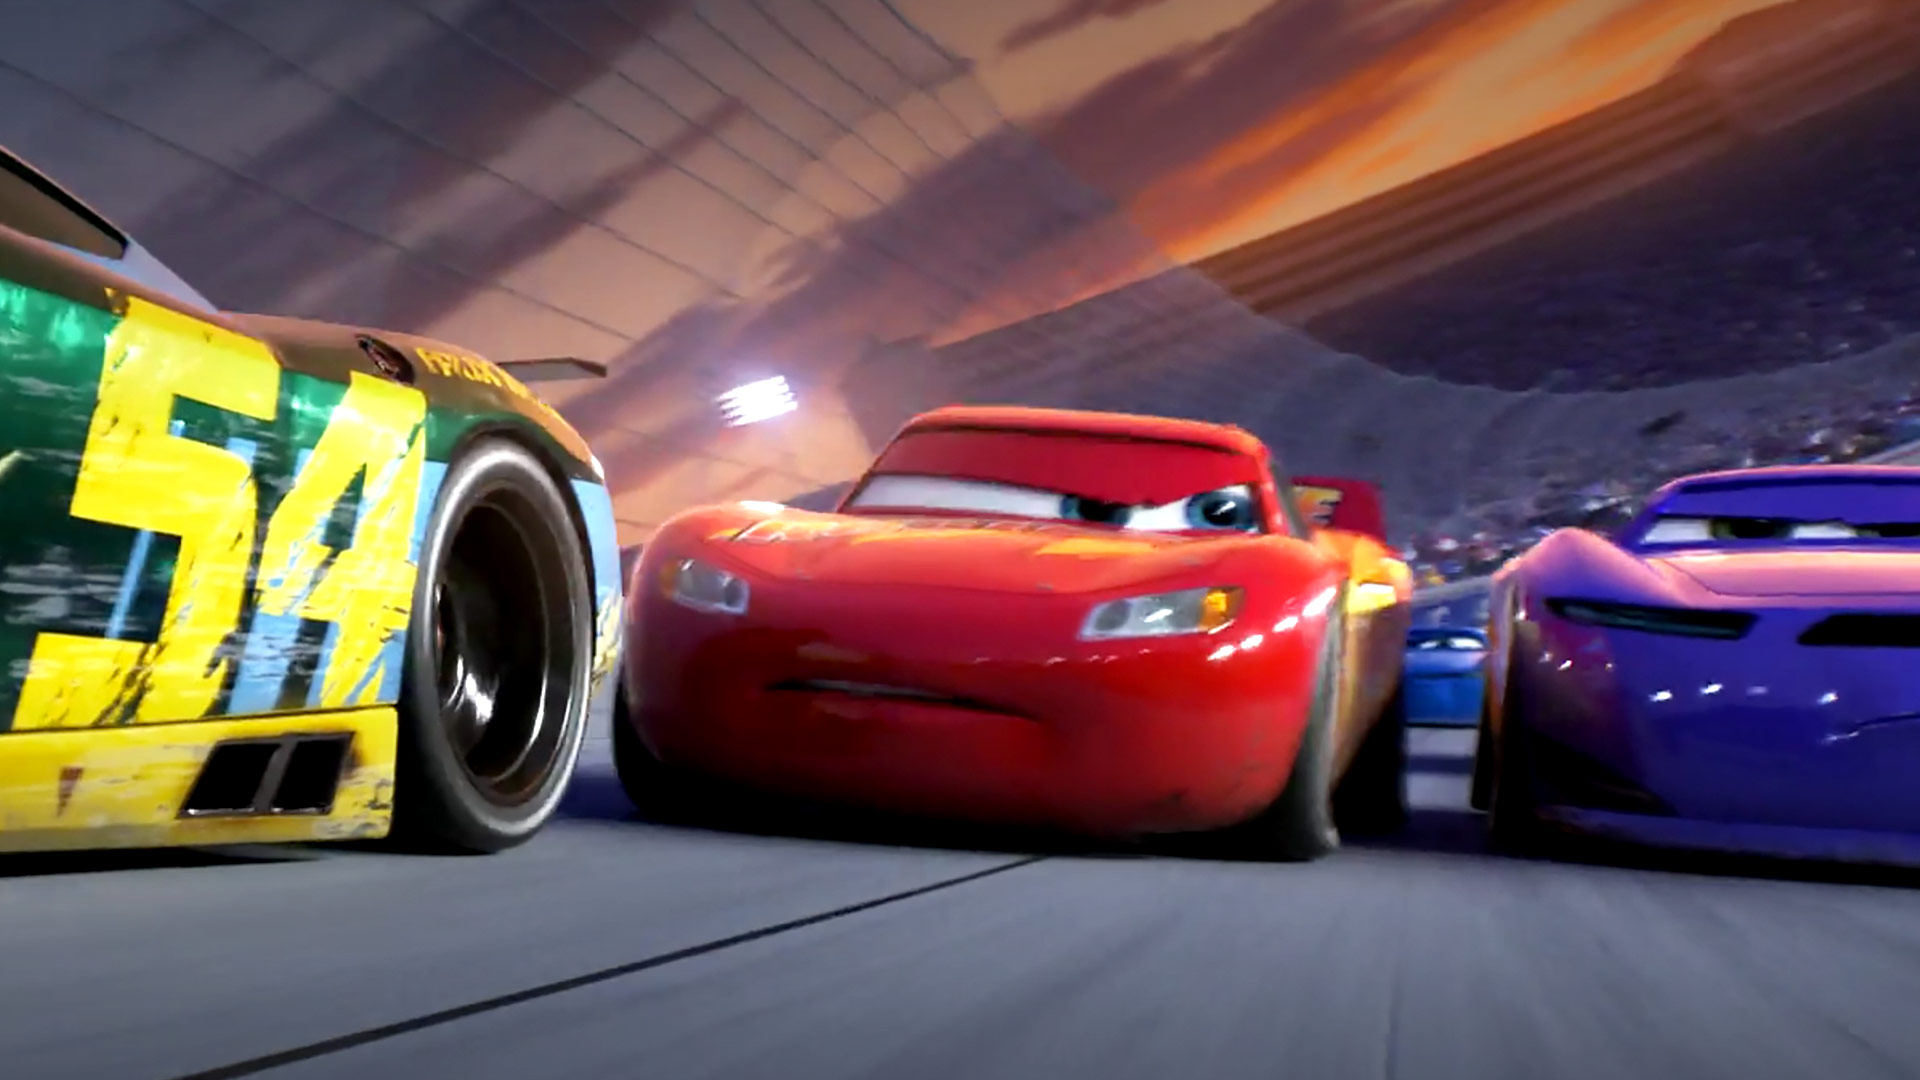 'Cars 3' beats 'Wonder Woman', 'All Eyez on Me' at US Box-Office